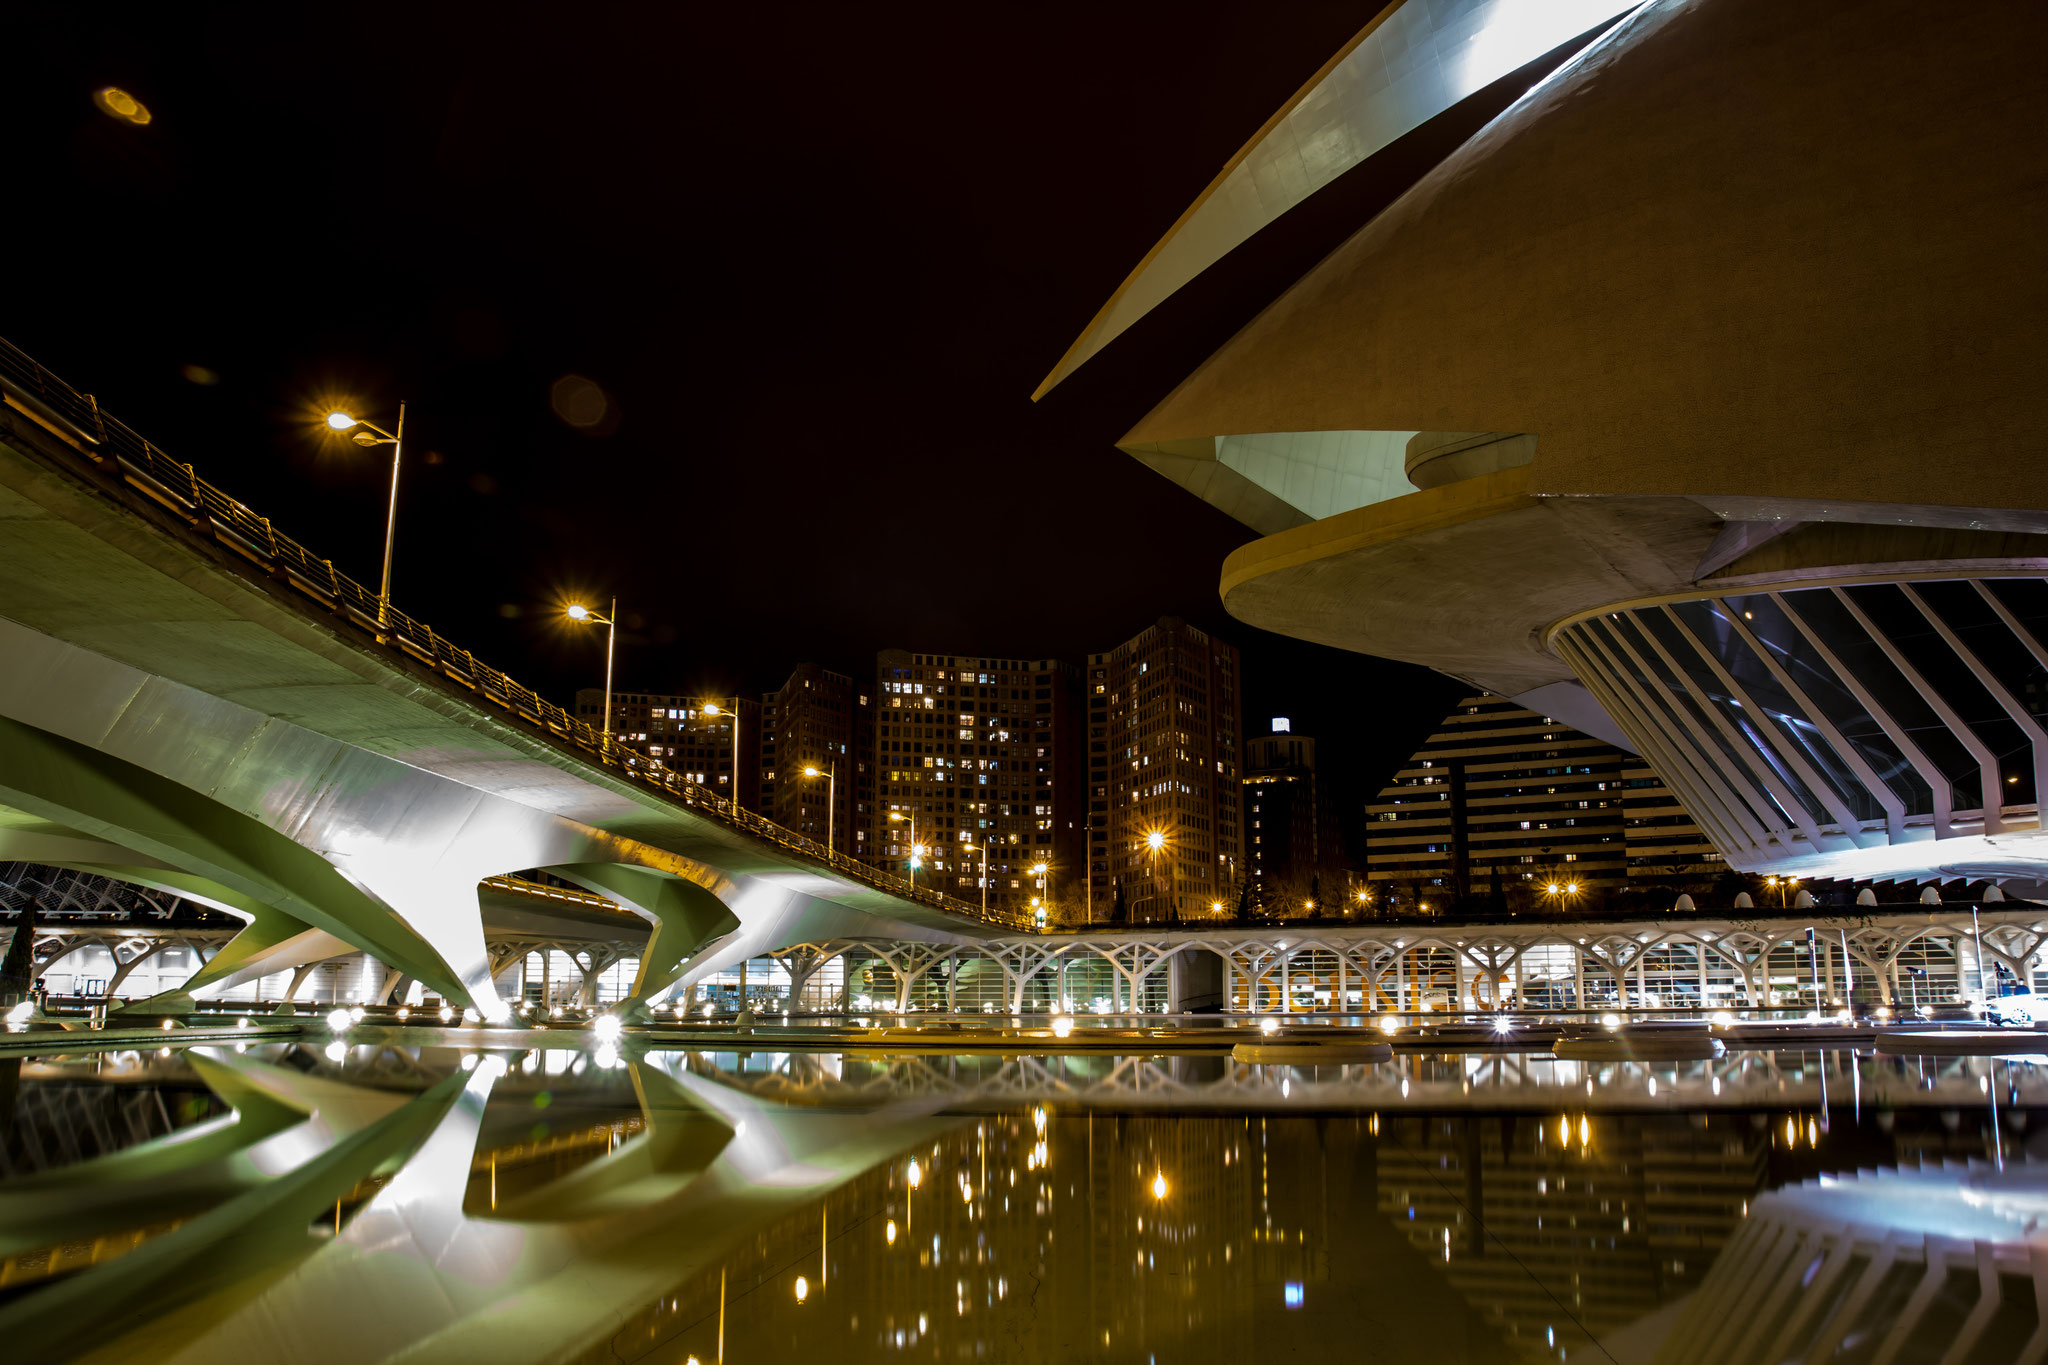 06_Ciutat de les Arts e les Ciencies in Valencia / Spain.